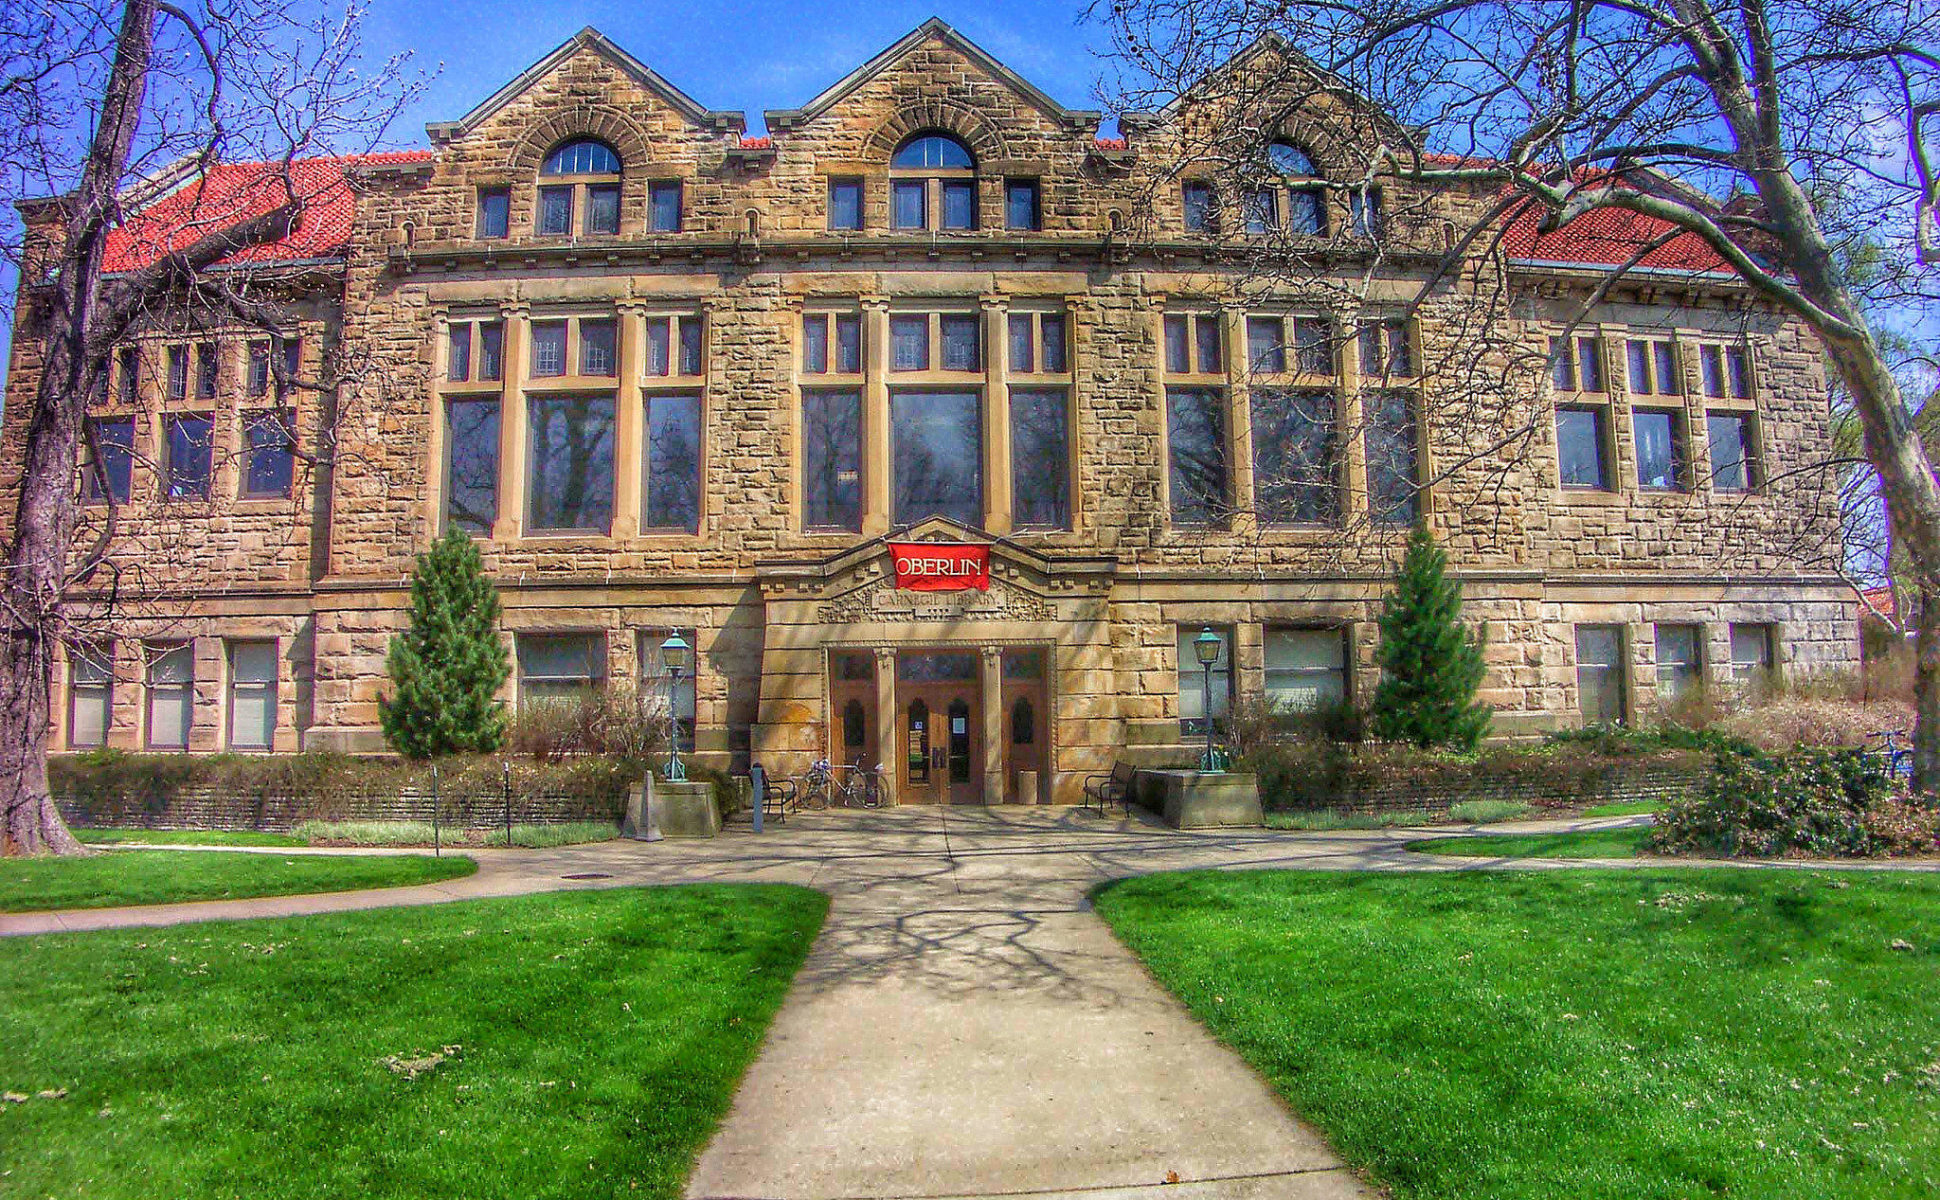 oberlin_college